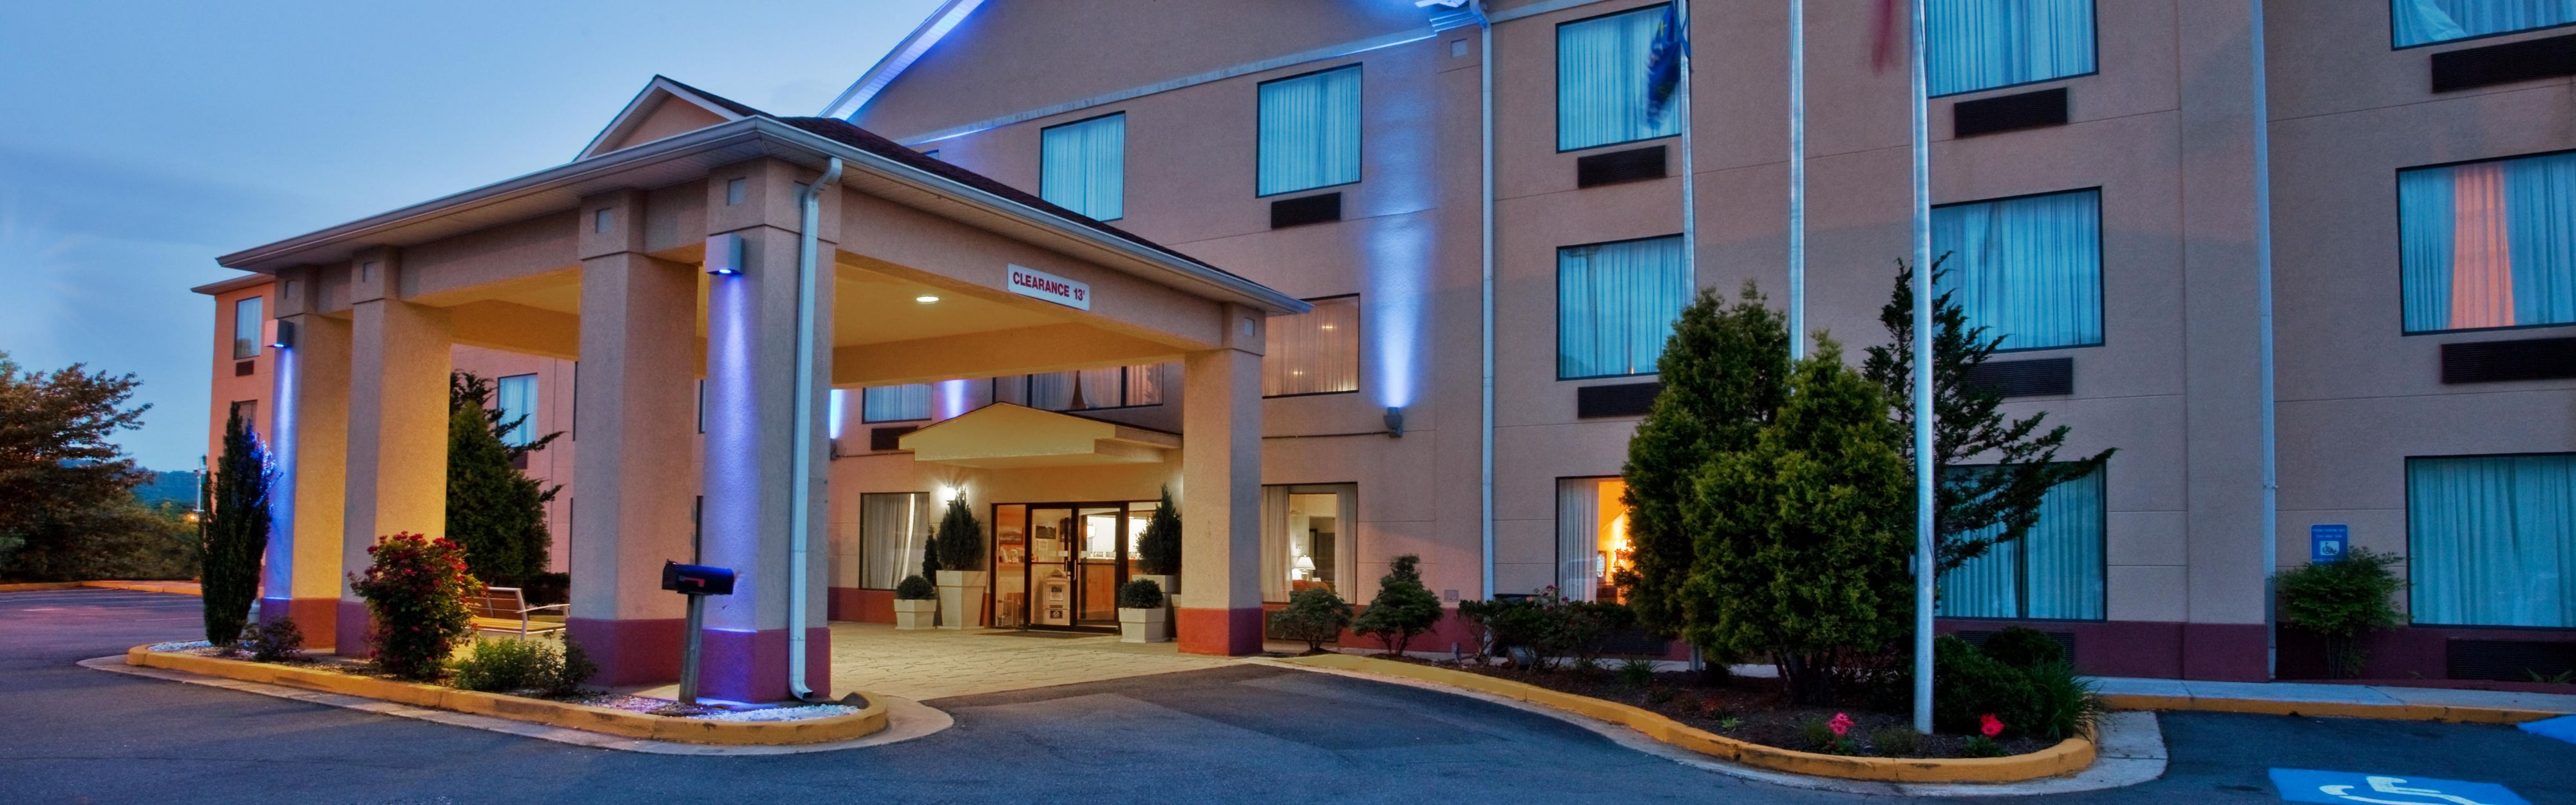 Holiday Inn Express & Suites Hiawassee image 0